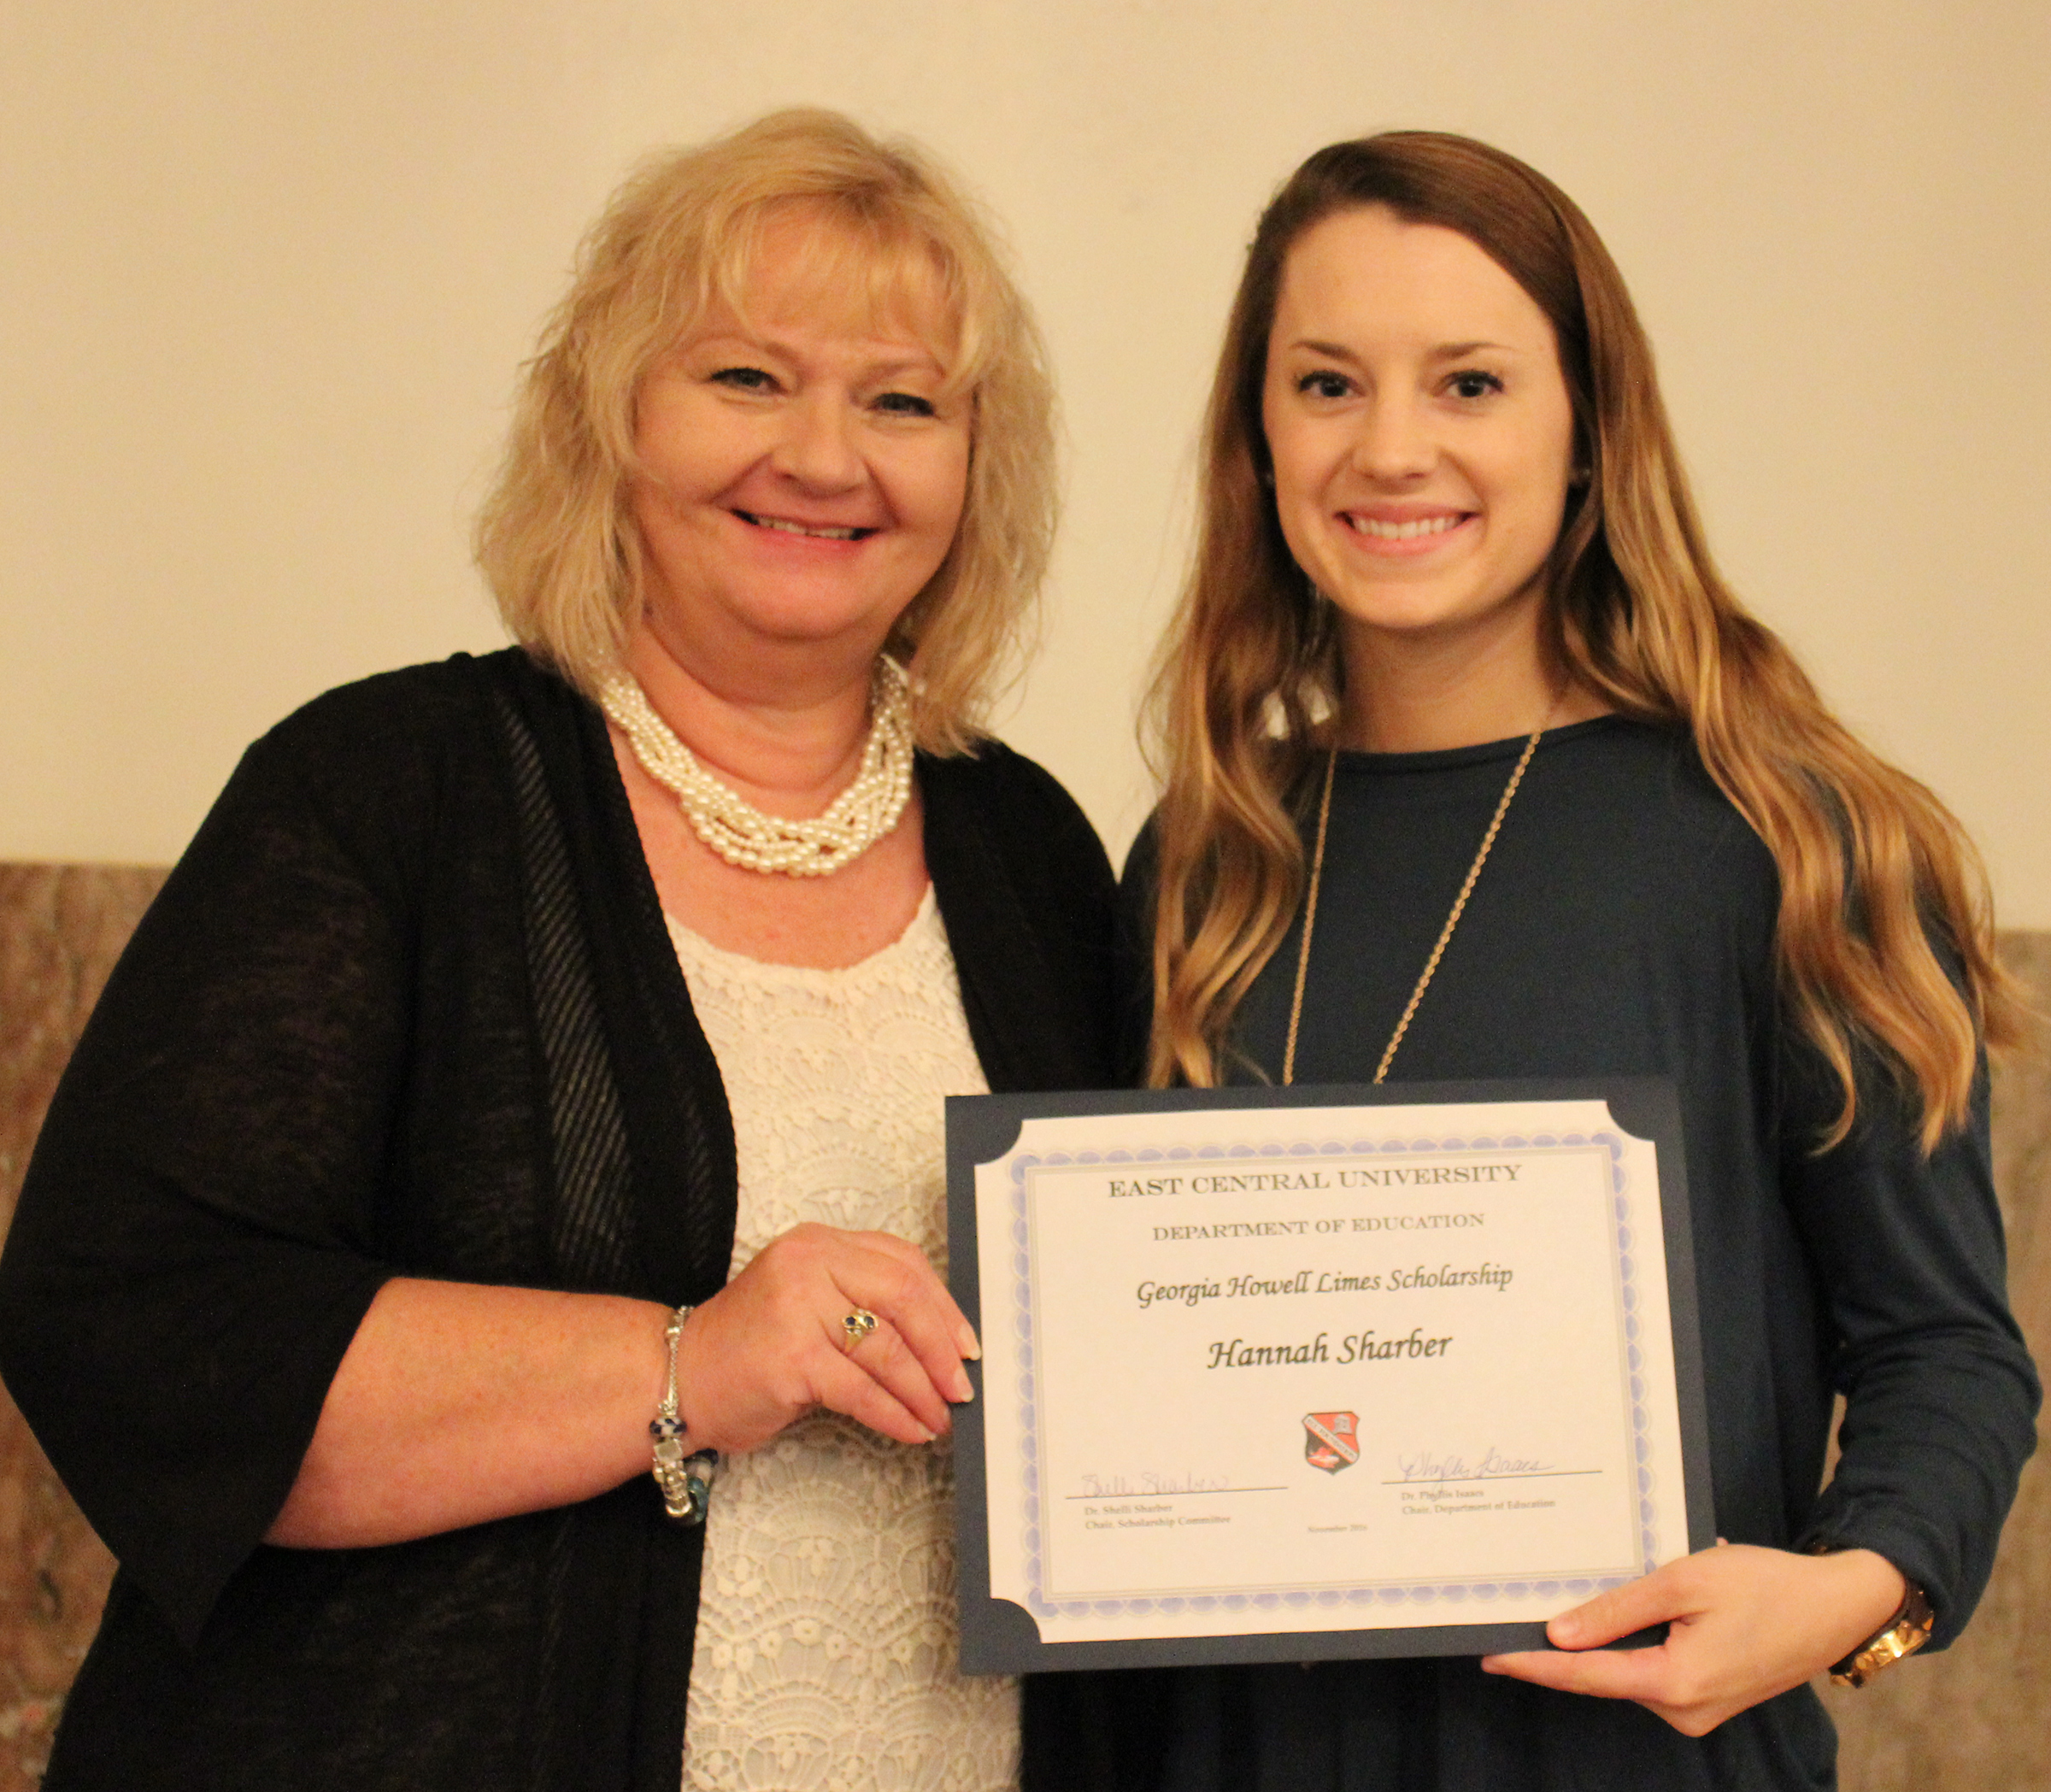 Hannah sharber 3 scholarships